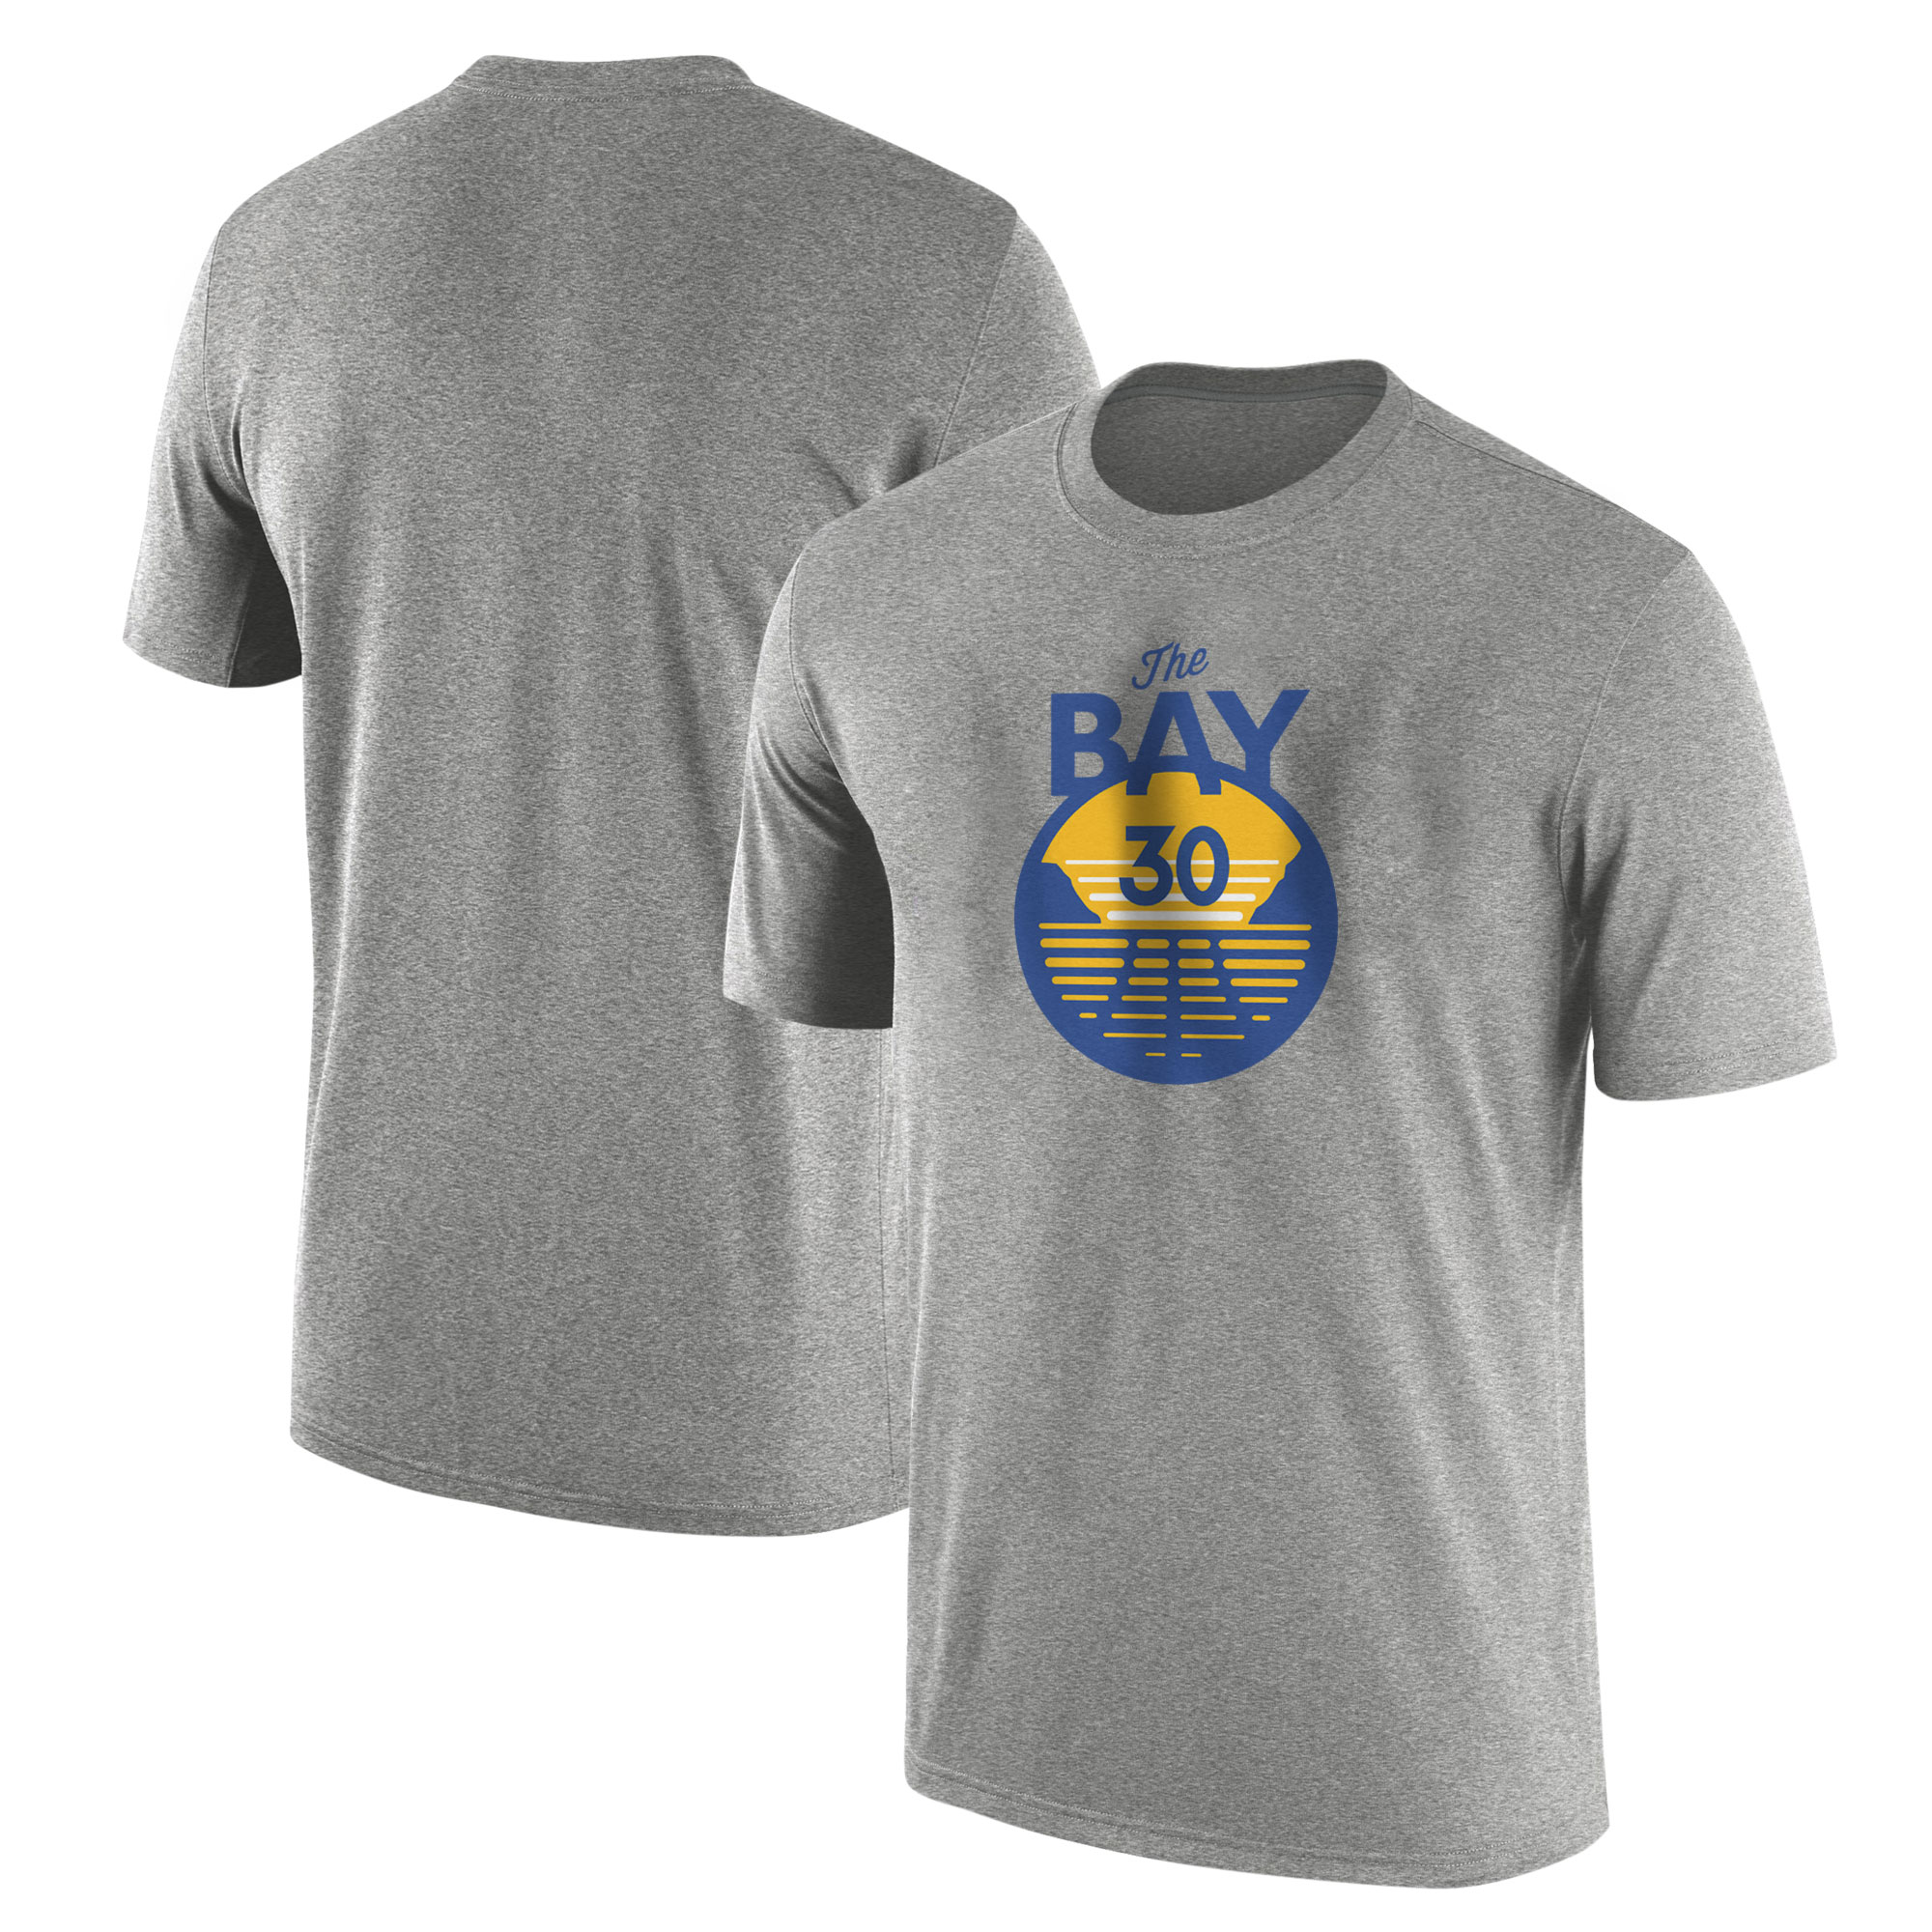 Golden State Warriors Curry The Bay Tshirt (TSH-YLW-437-THE-BAY)